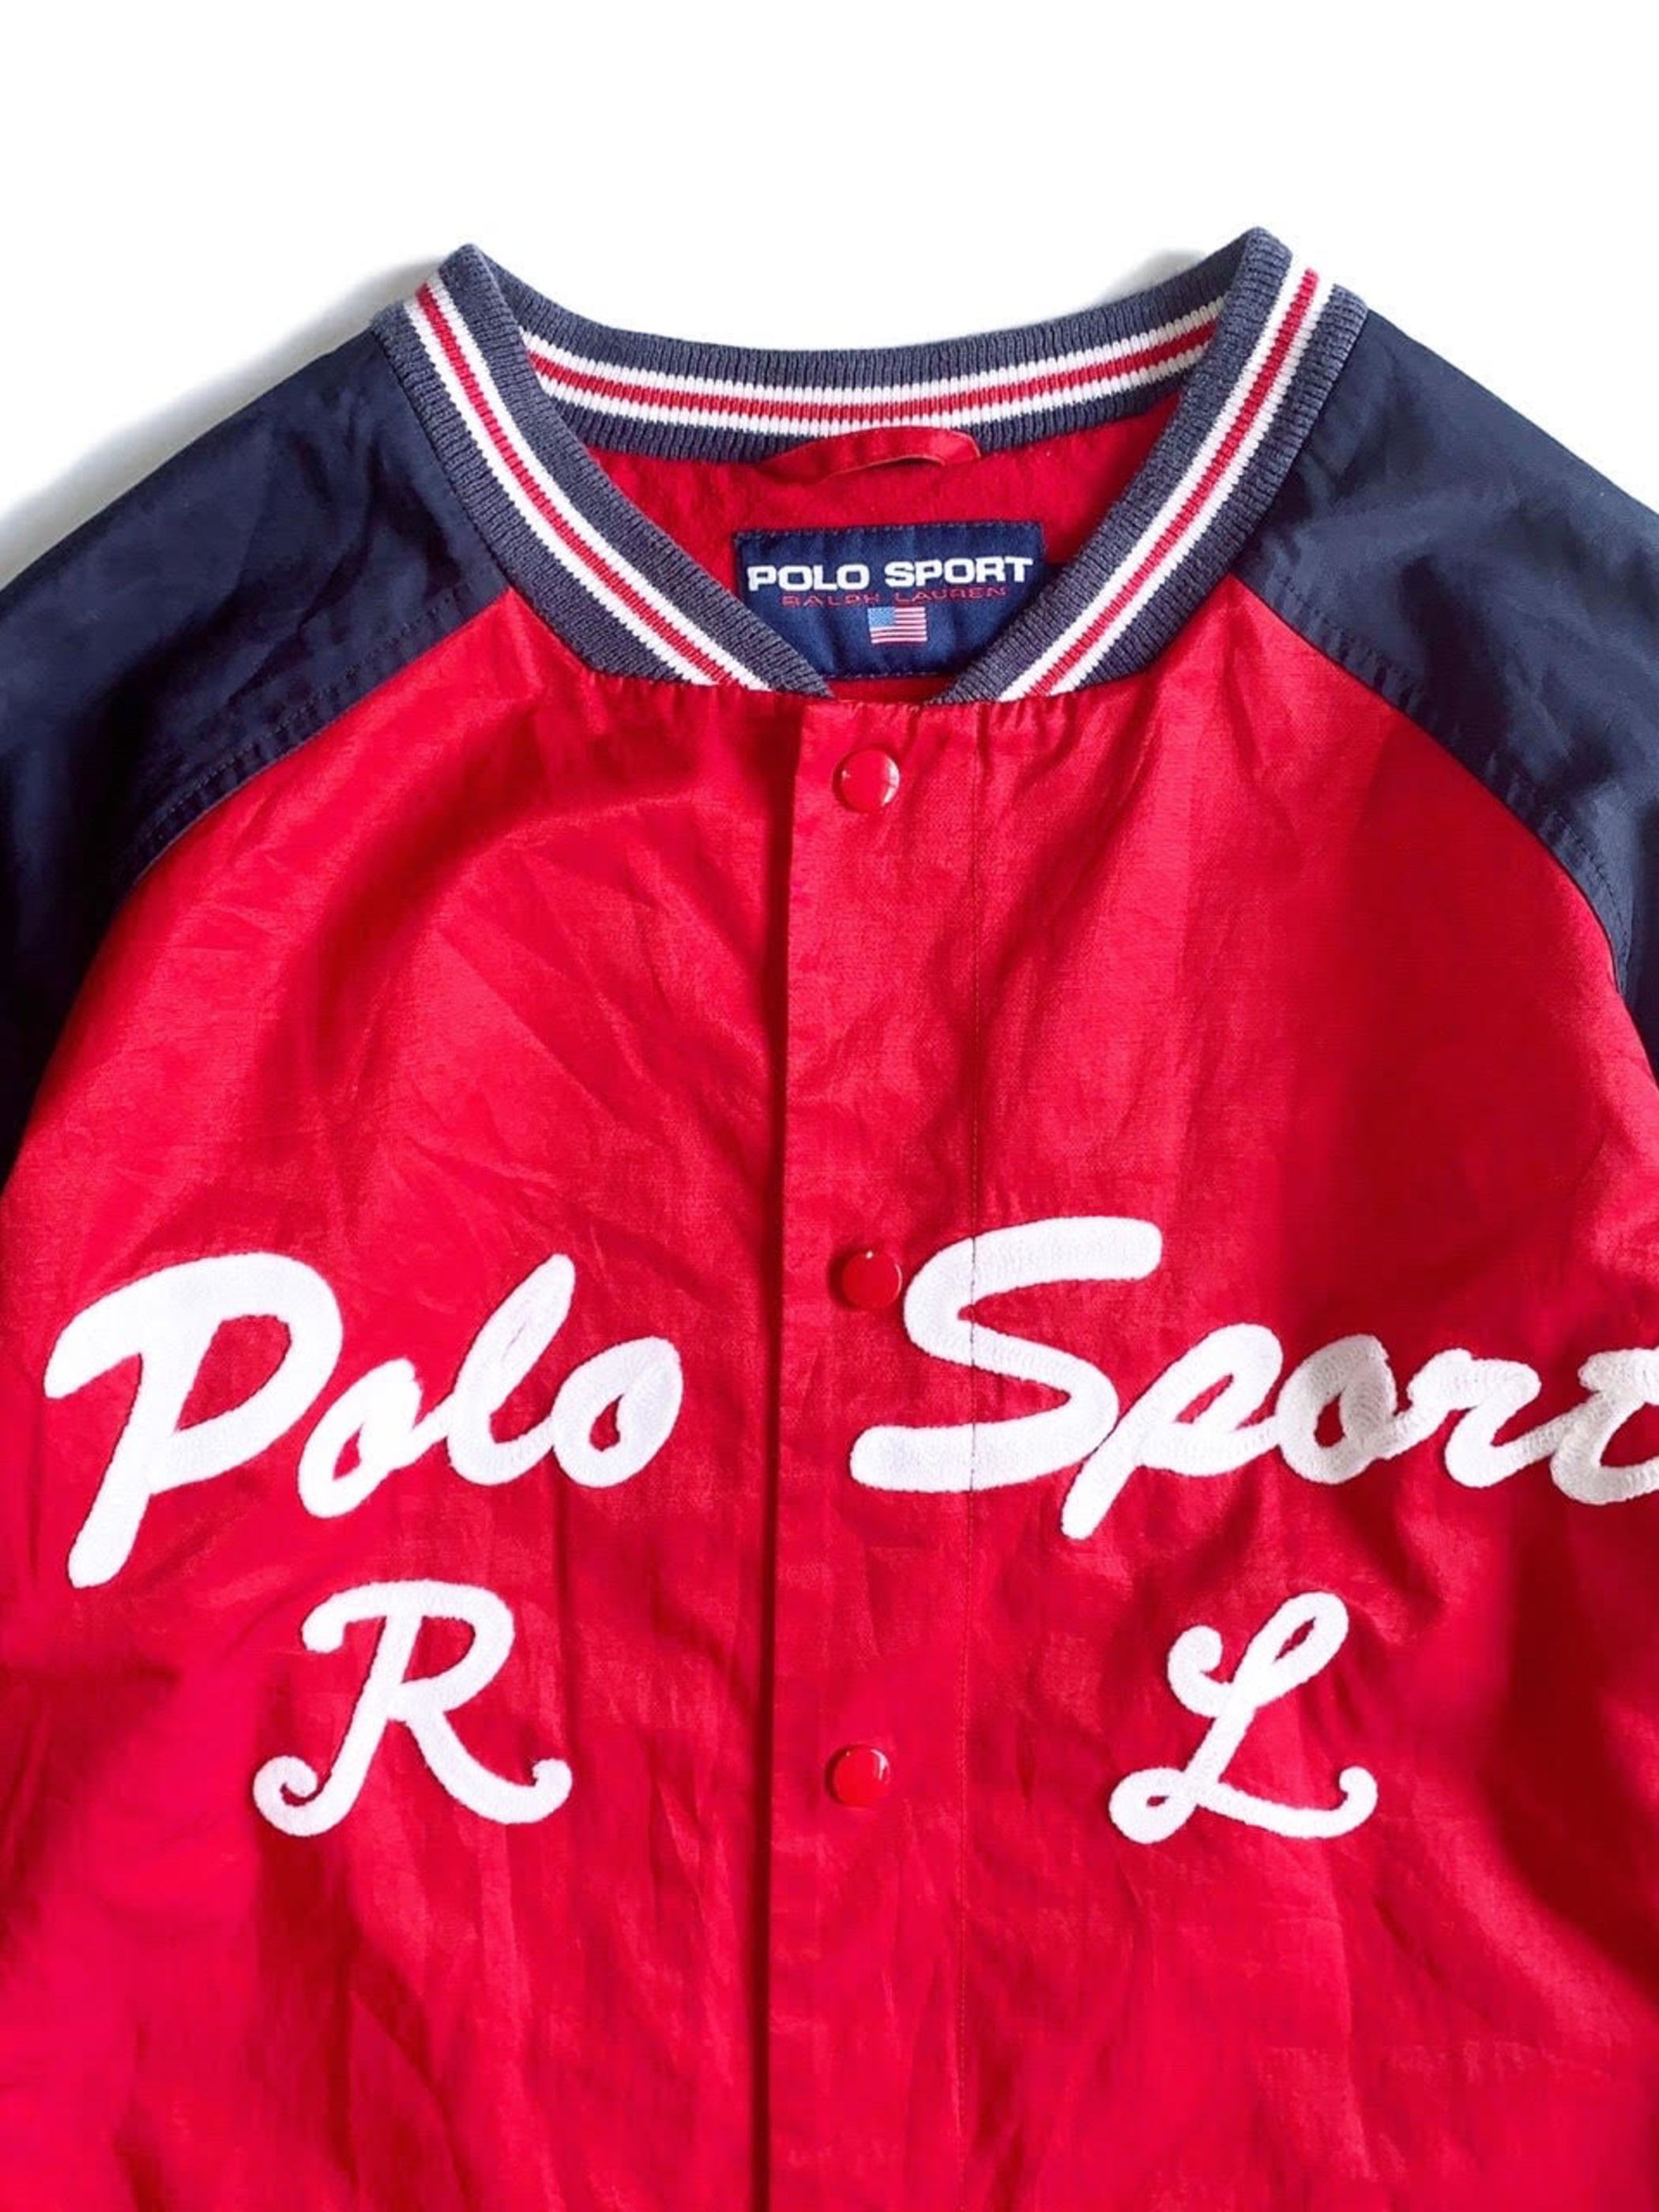 POLO SPORT ポロスポーツ S/S jacket